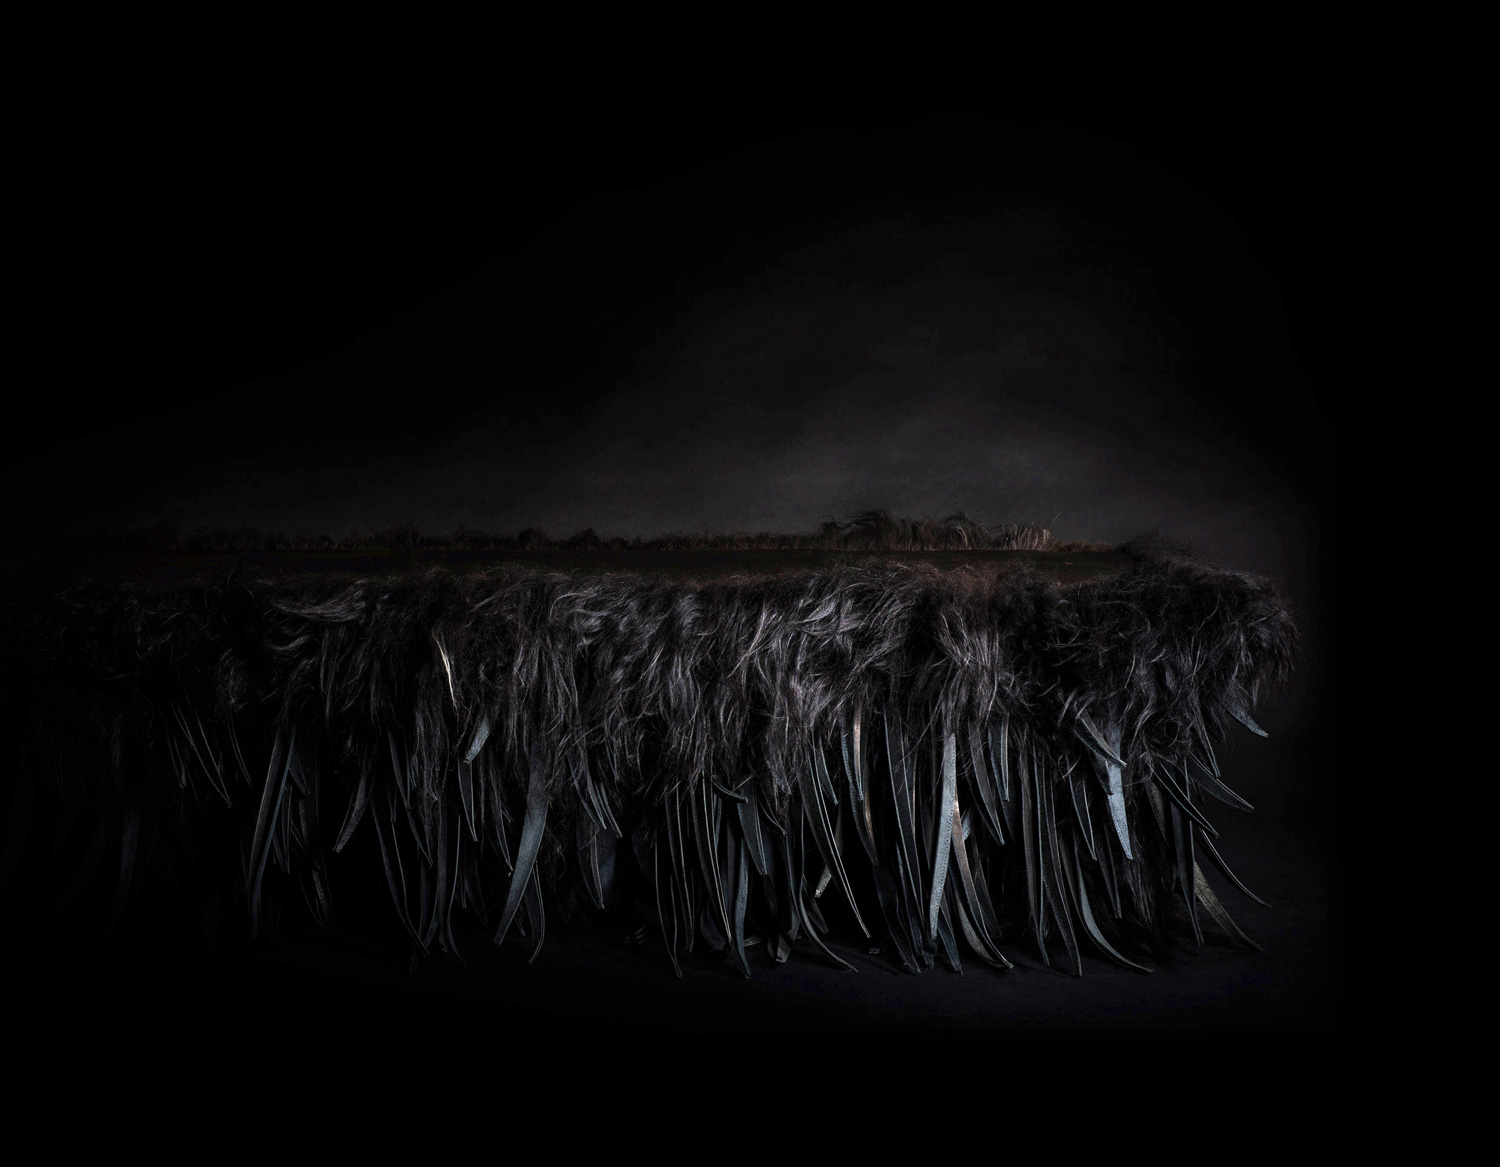 Hairy Wild Man From Botany Bay Chaise Lounge, Broached Monsters by Trent Jansen | Yellowtrace